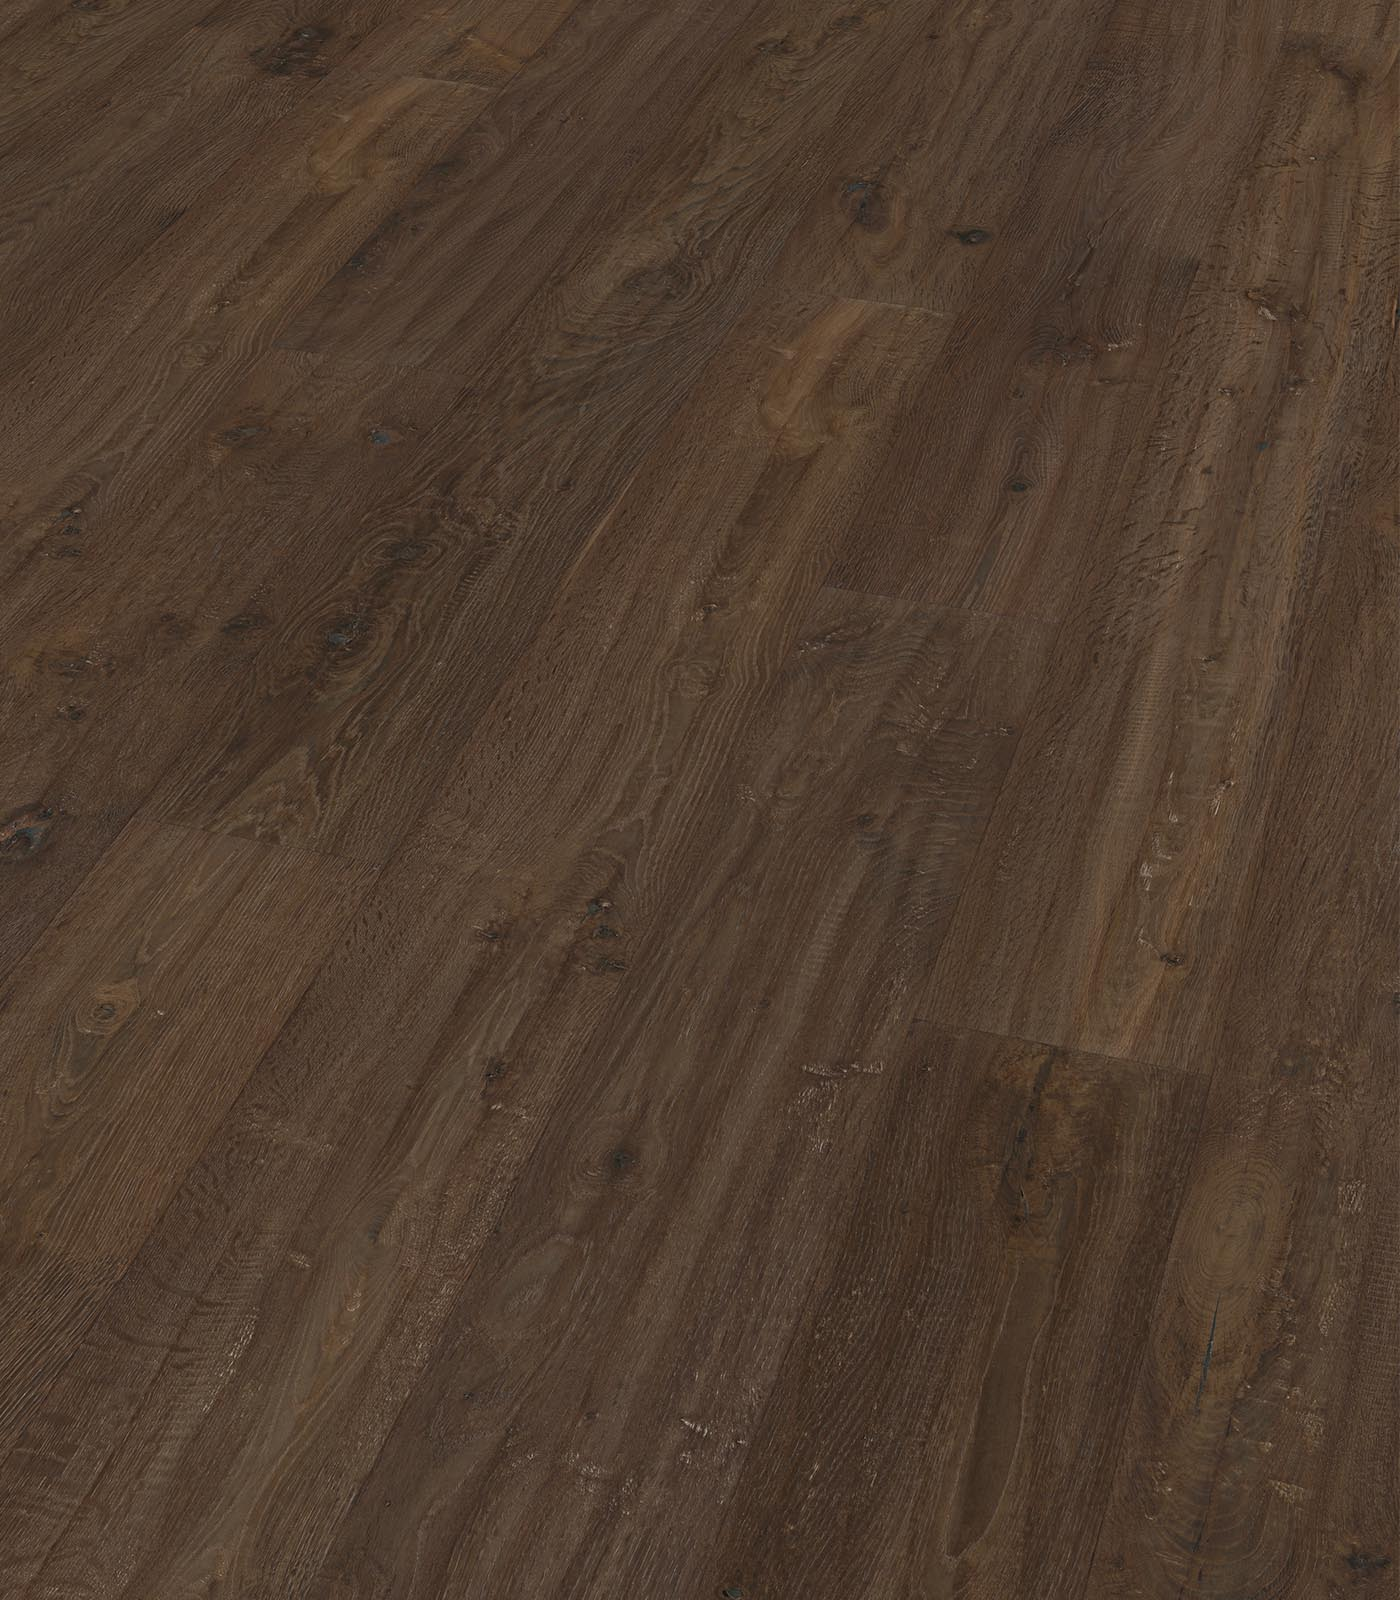 Blue Ridge-Antique Collection-European Oak floors-angle